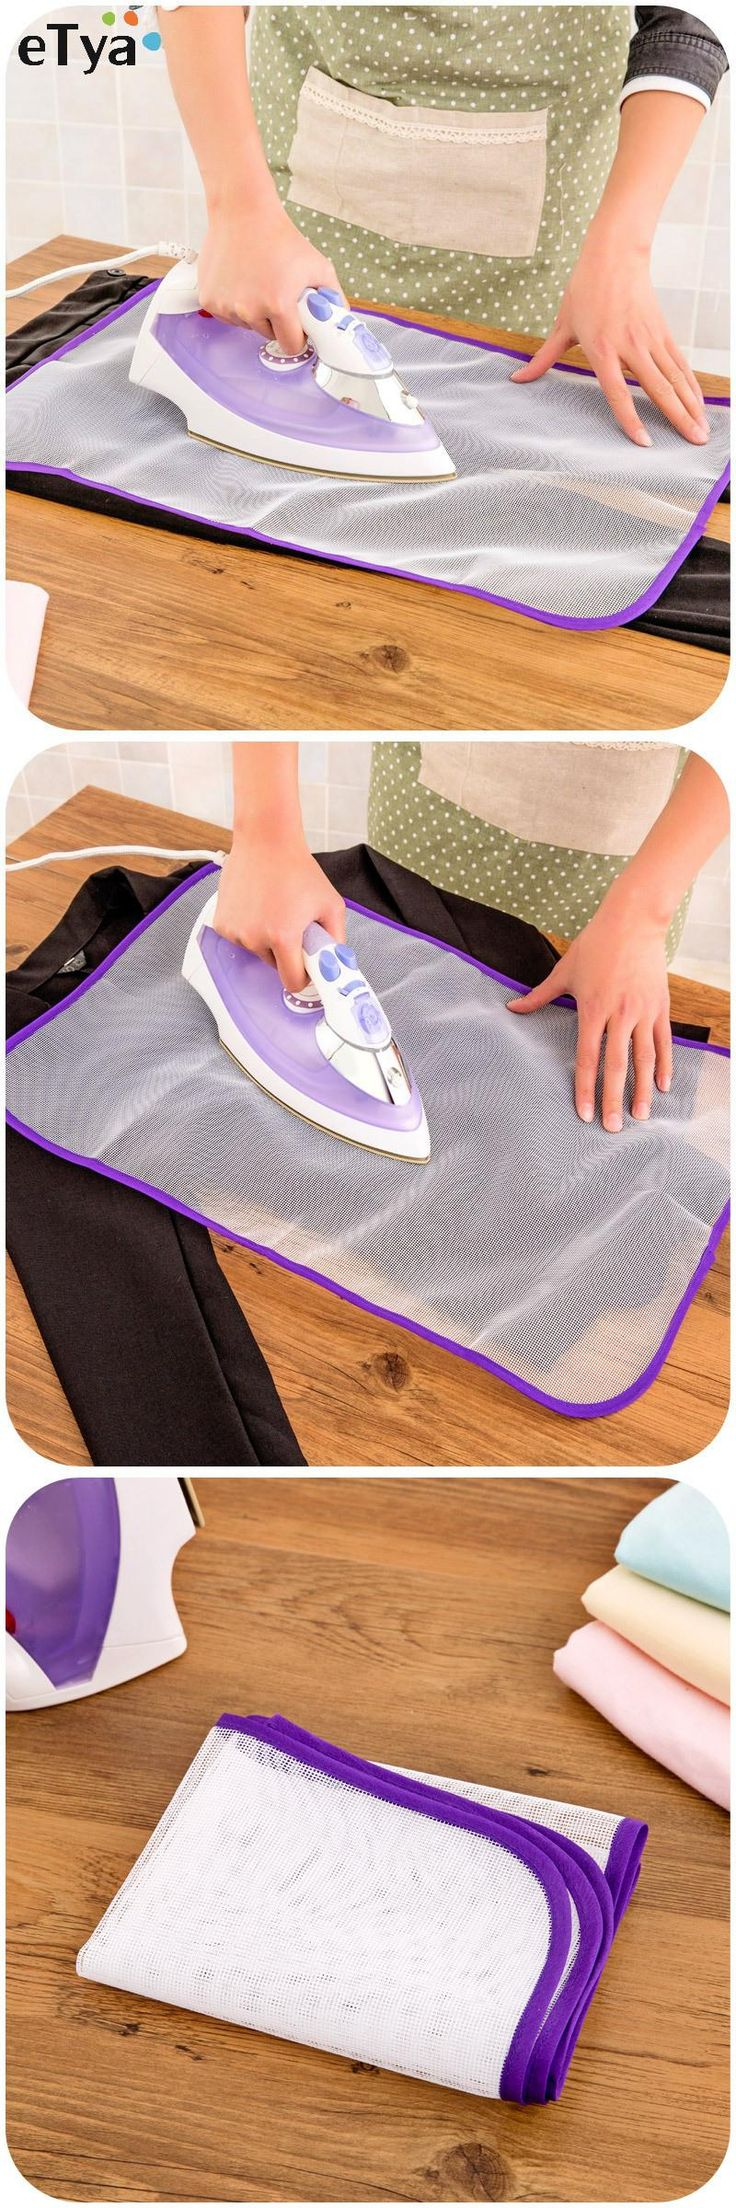 [Visit to Buy] Ironing Protection Cloth Foldable Mesh Pad Protective Insulation Against High Temperature Anti-scald Household Ironing Mat Tool #Advertisement